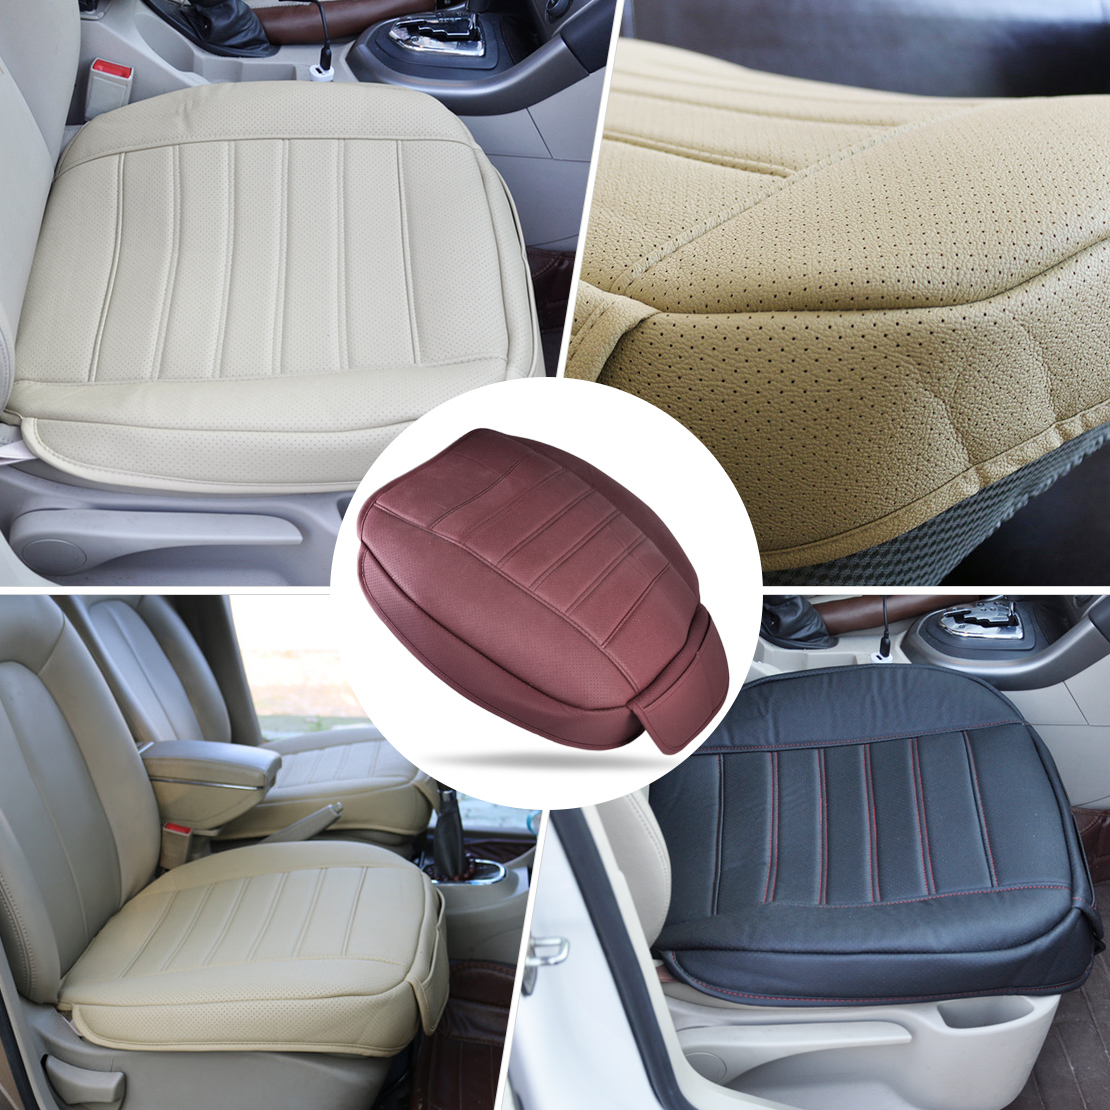 dwcx new universal pu leather car interior front seat cushion cover single seatpad for vw golf. Black Bedroom Furniture Sets. Home Design Ideas